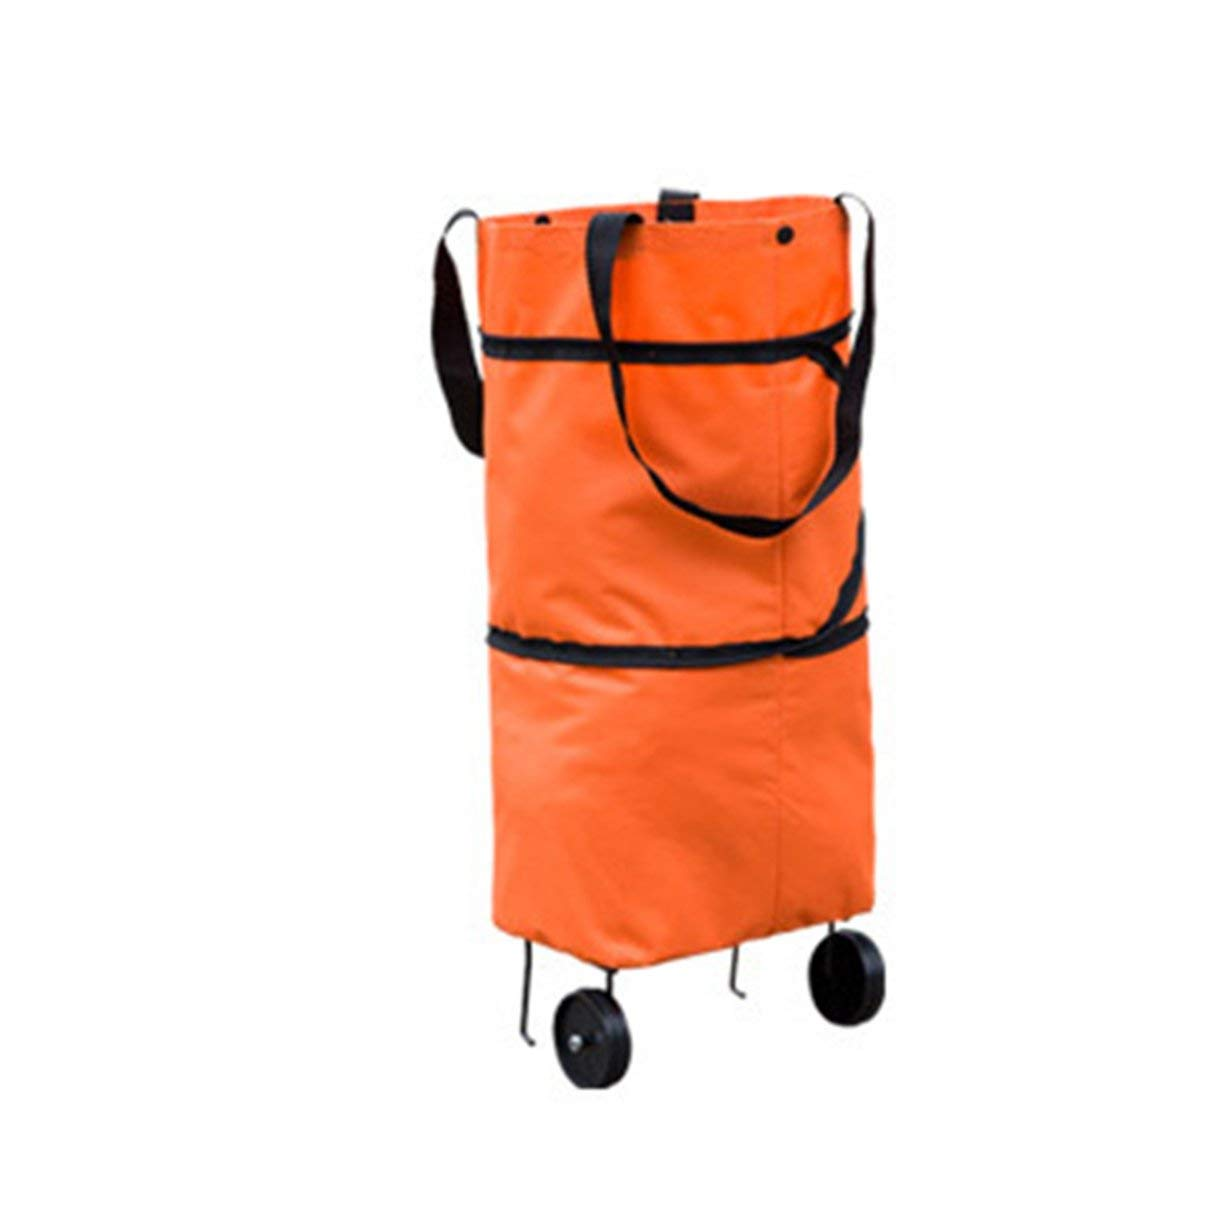 Shopping Trolley Wheel Bag,Fashionable Design Large Capacity Waterproof Oxford Cloth Foldable Shopping Trolley Wheel Bag Traval Cart Luggage Bag by Detectoy (Image #1)